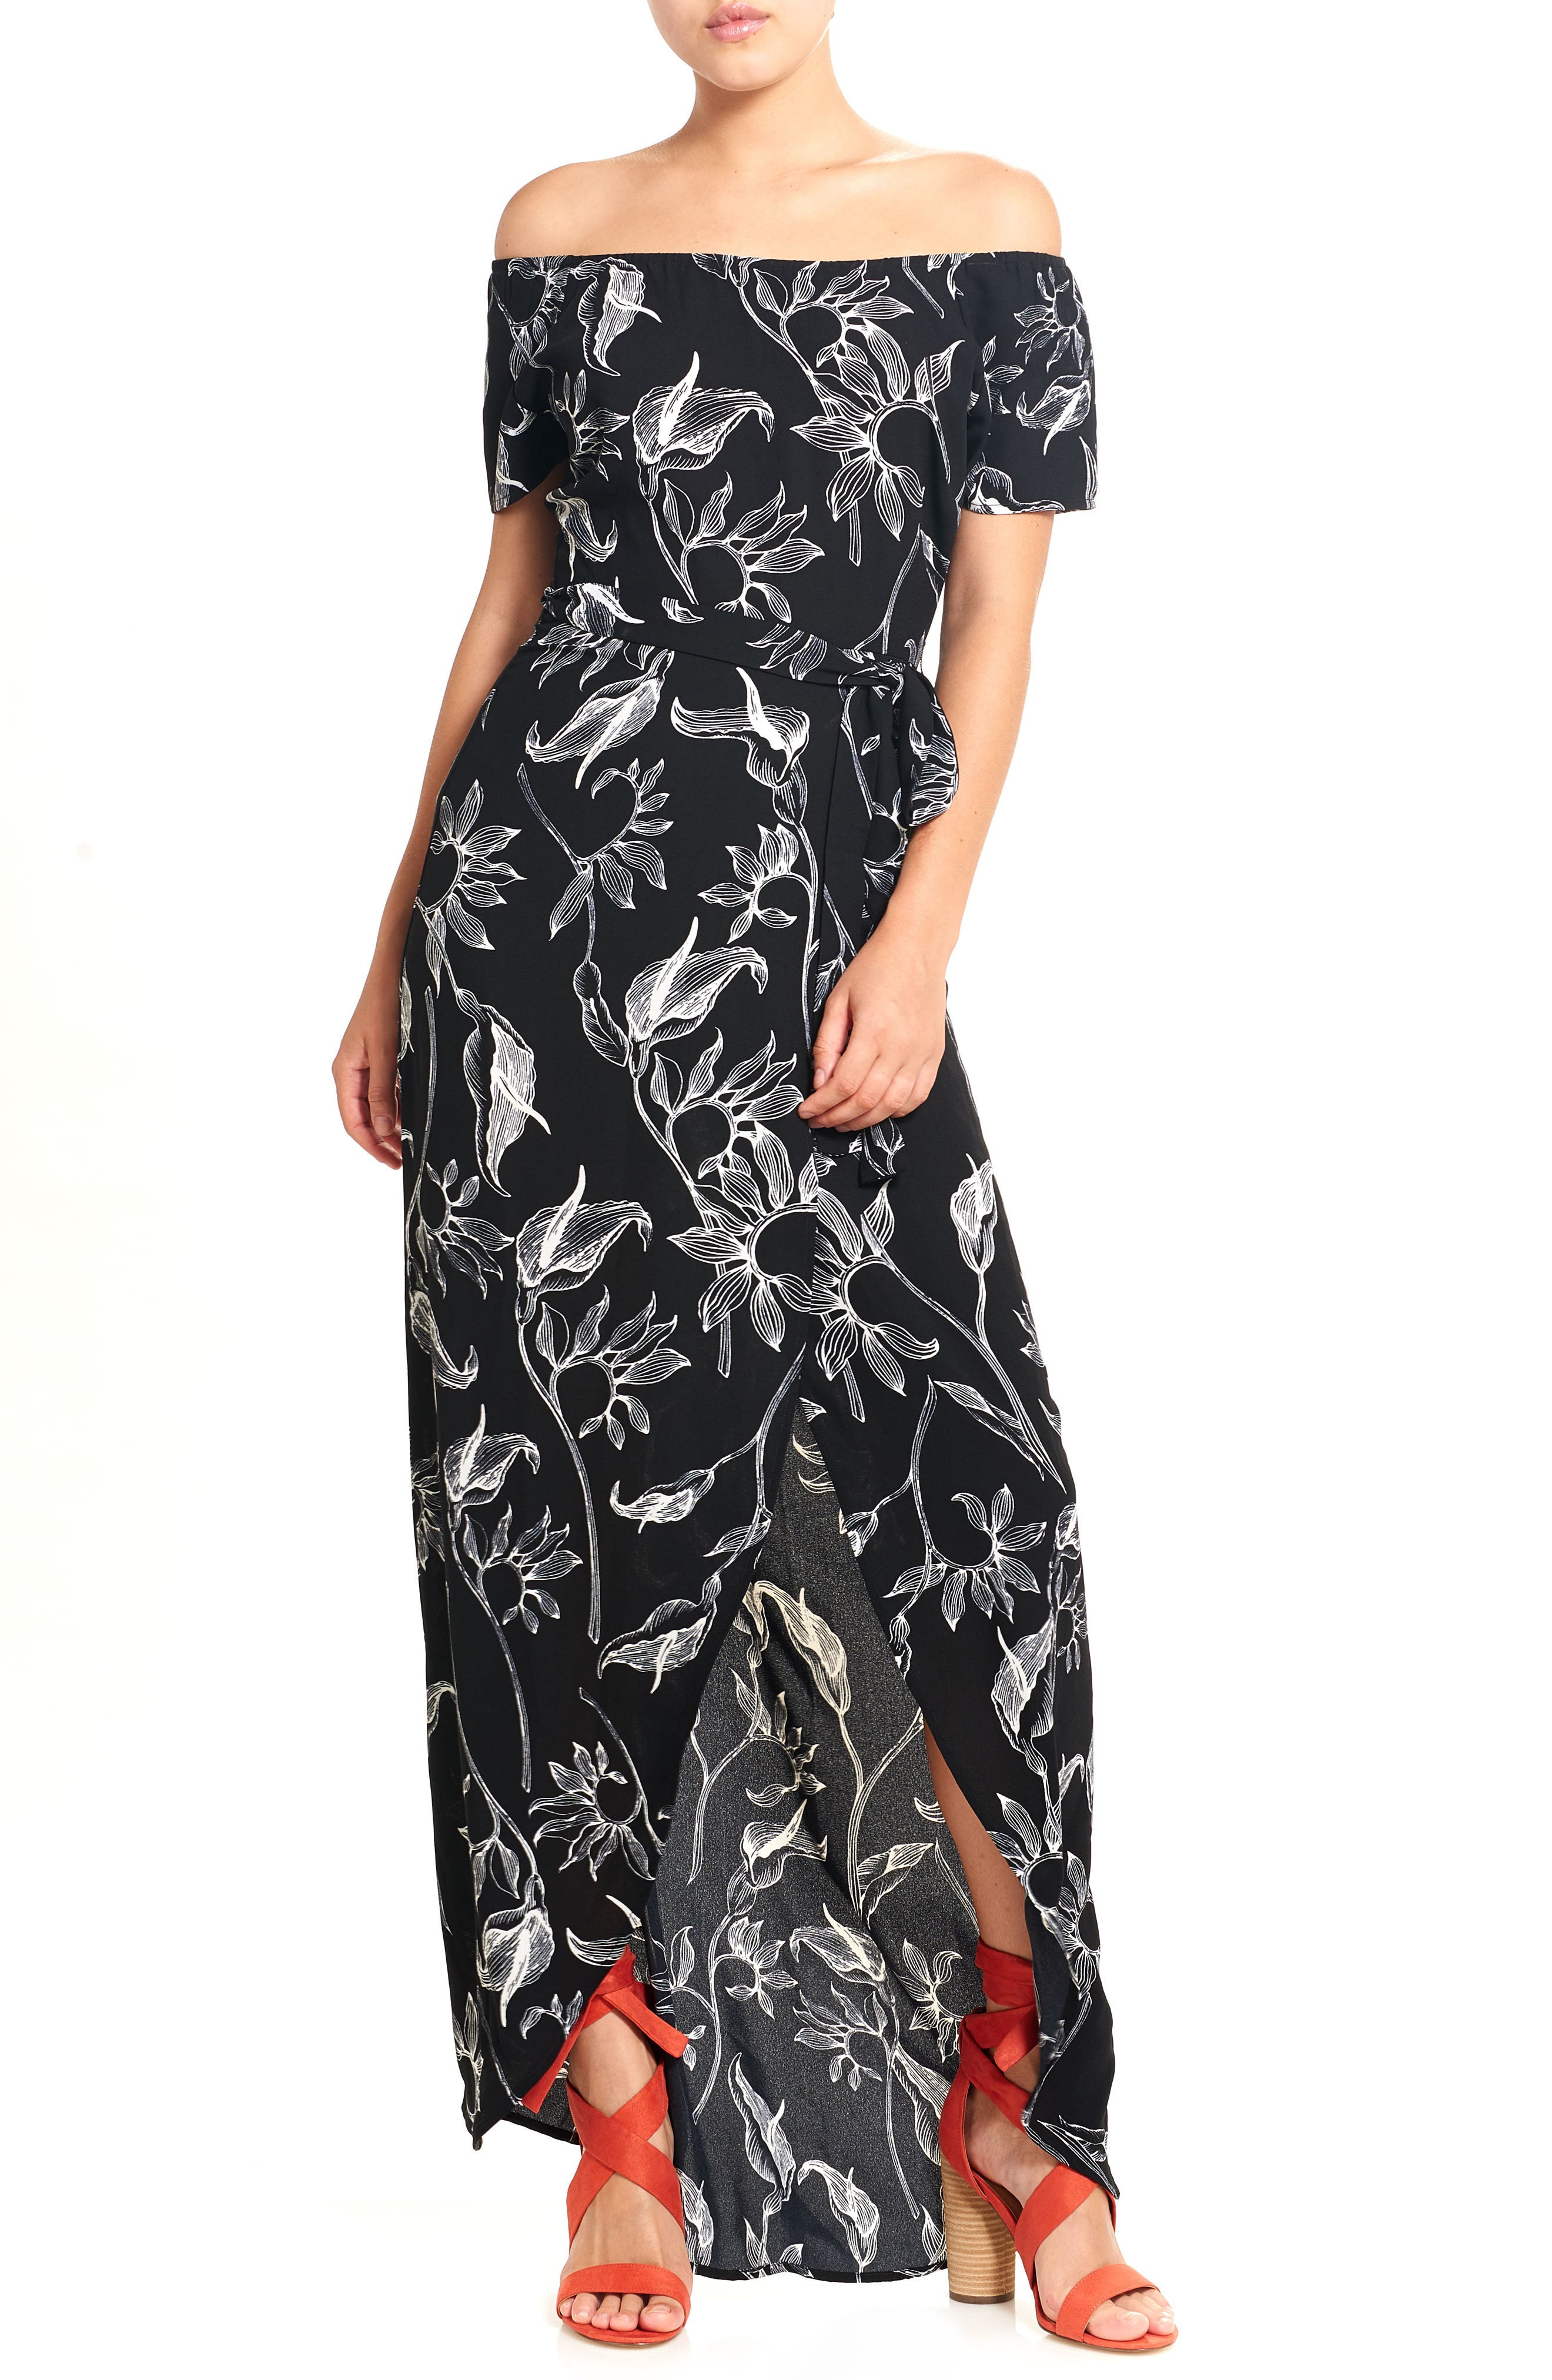 THIEVES LIKE US Print Off the Shoulder Maxi Dress